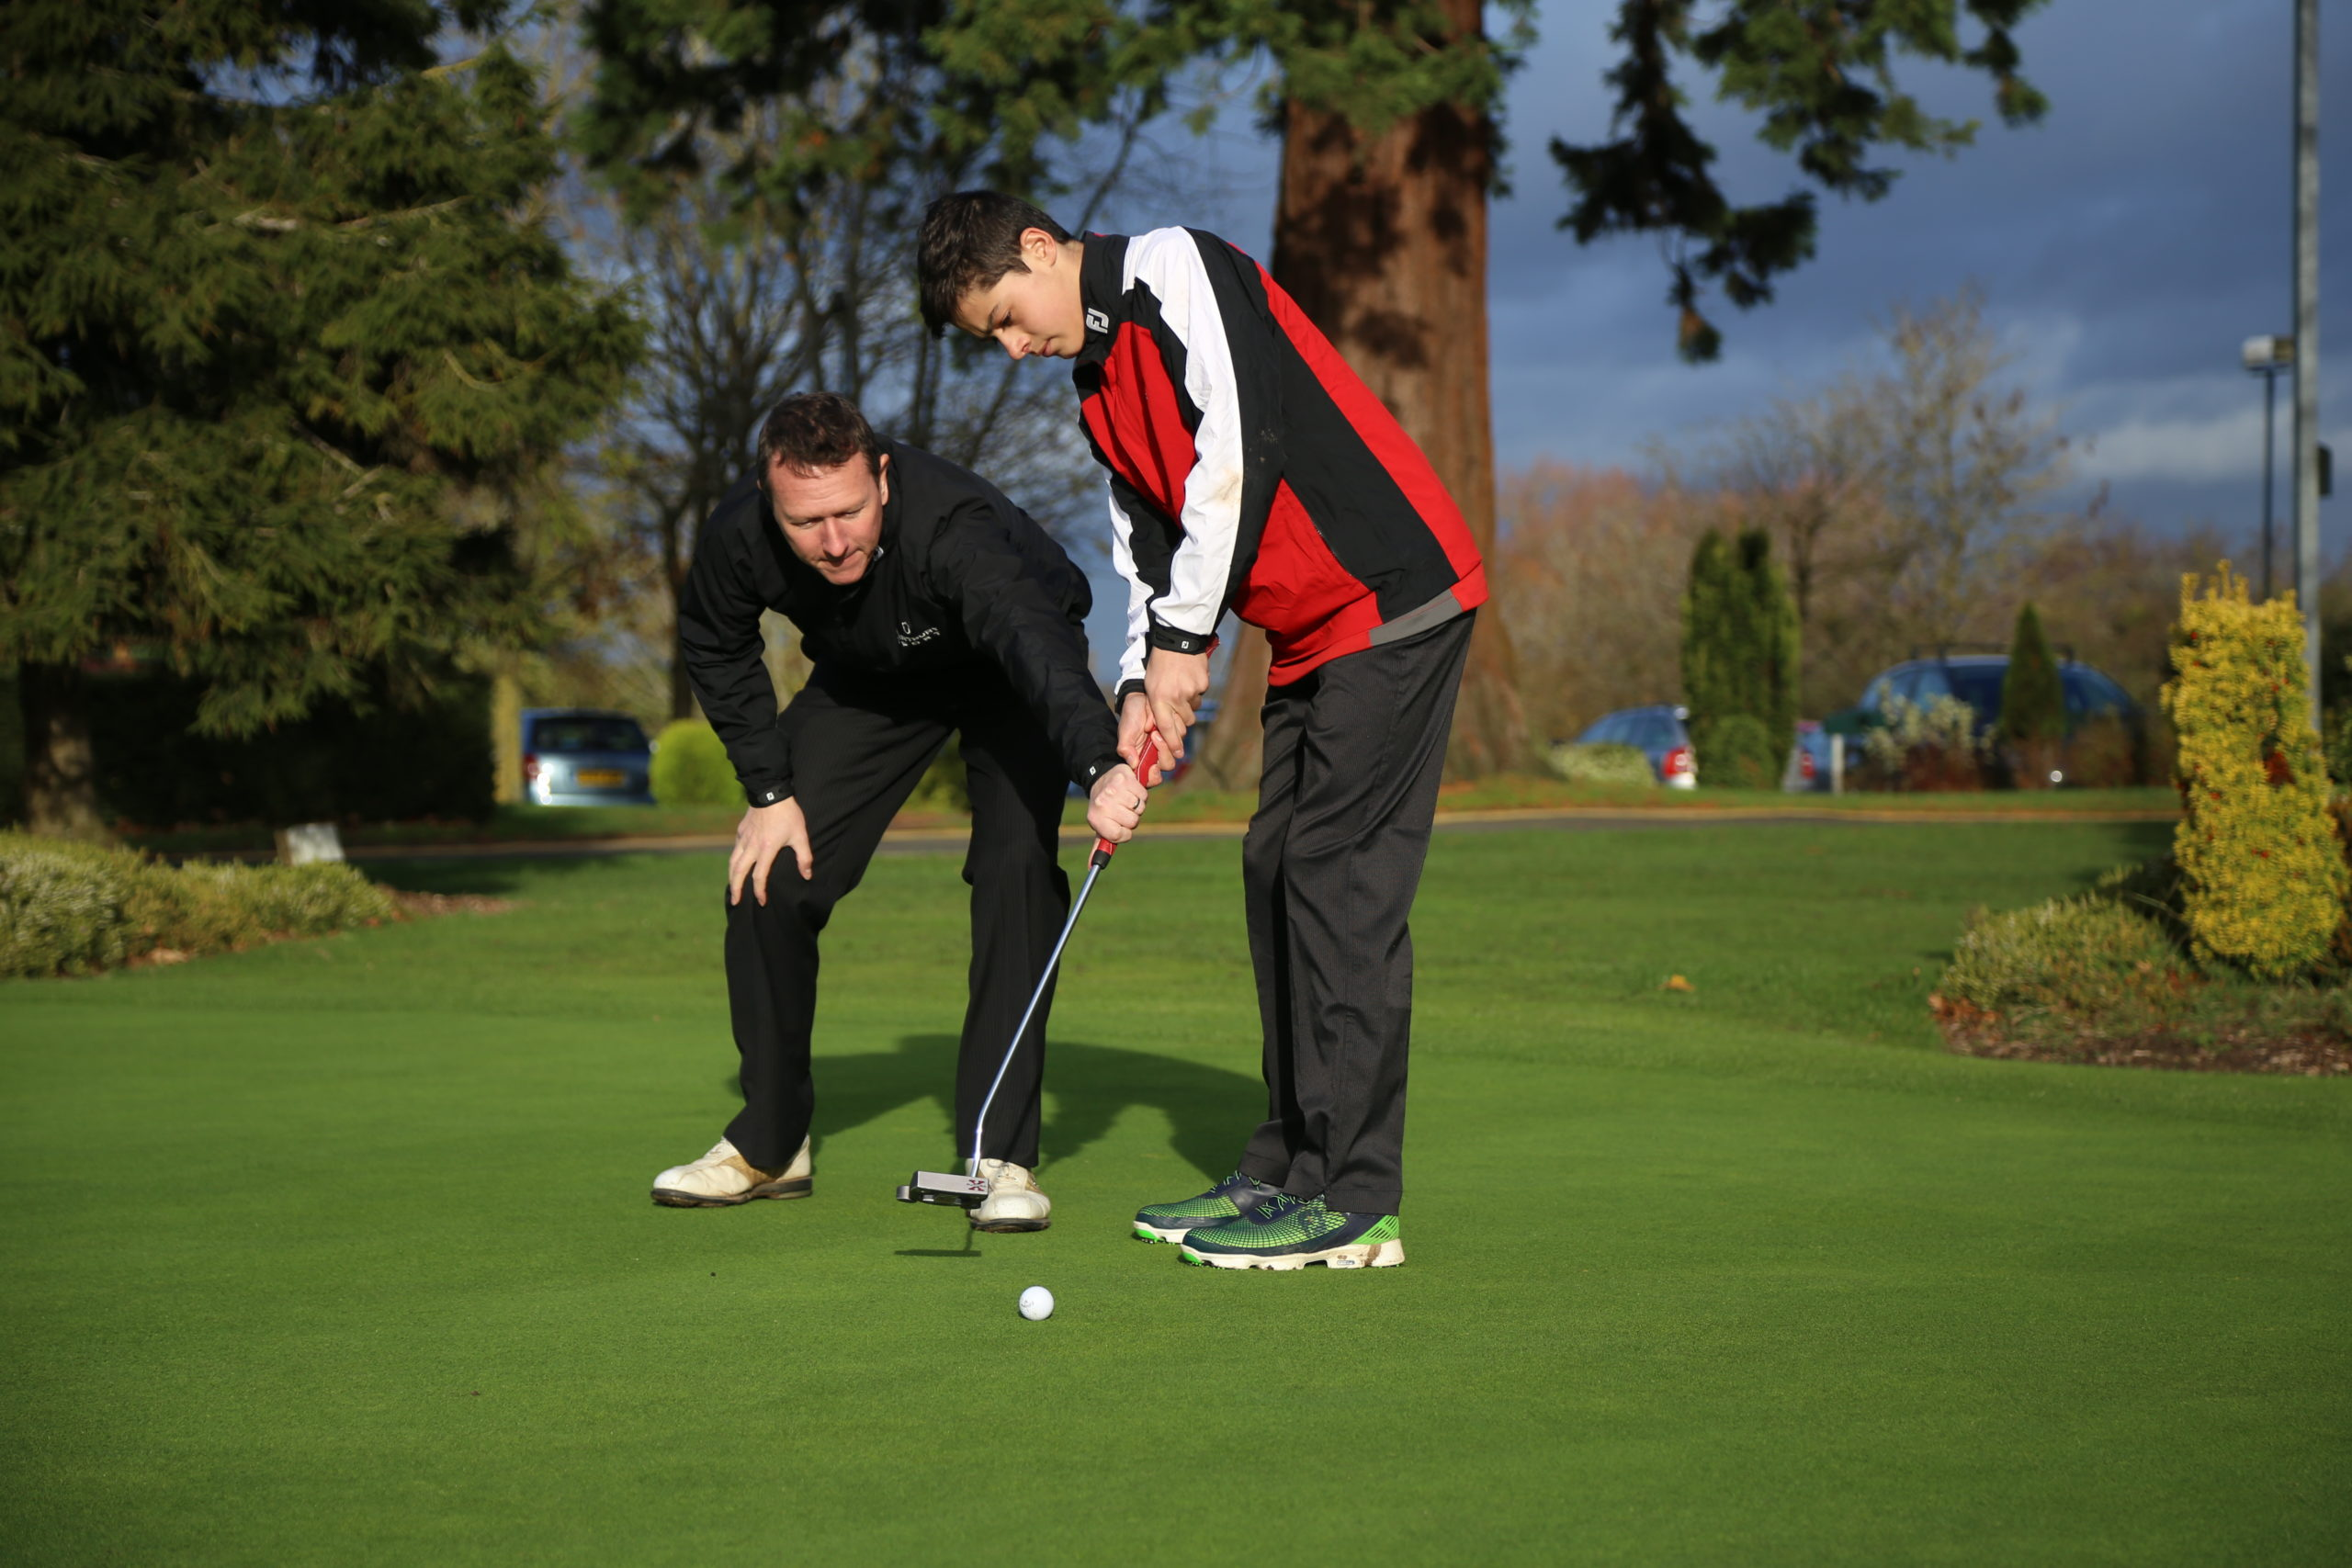 A Hartpury golf student receiving tuition